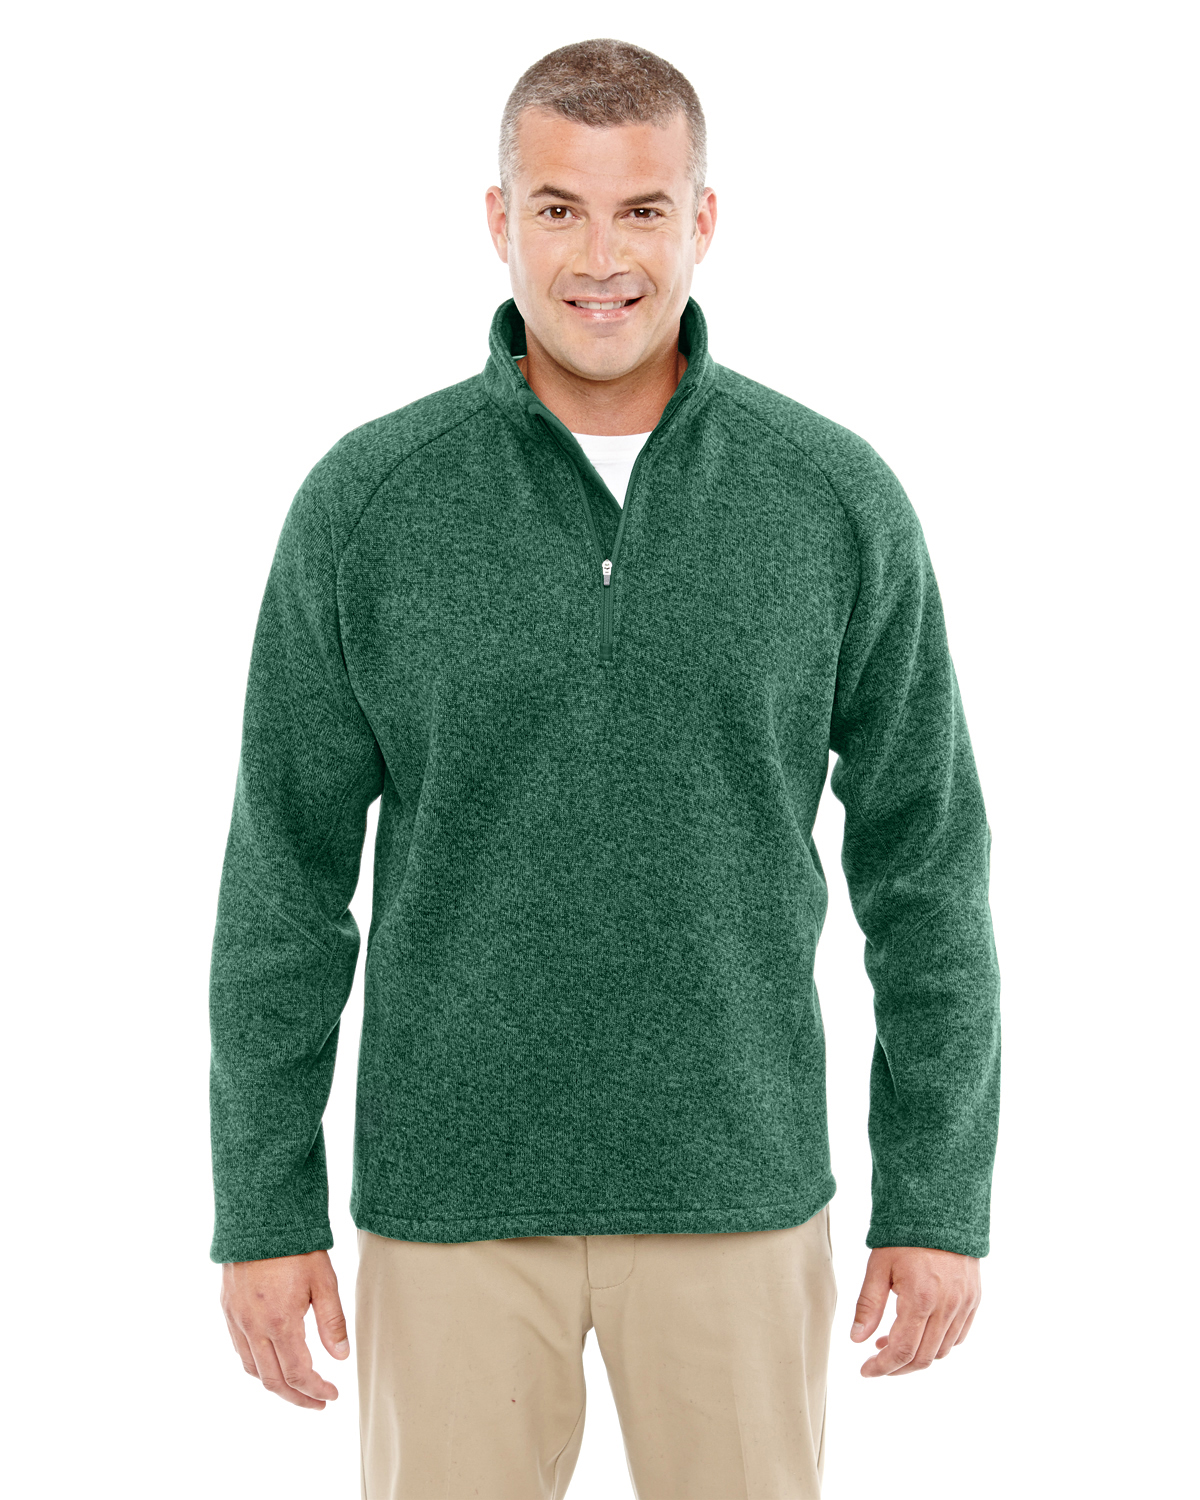 Devon & Jones - DG792 Men's Bristol Sweater Fleece Quarter-Zip, Pensacola, Embroidery, Screen Printing, Logo Masters International